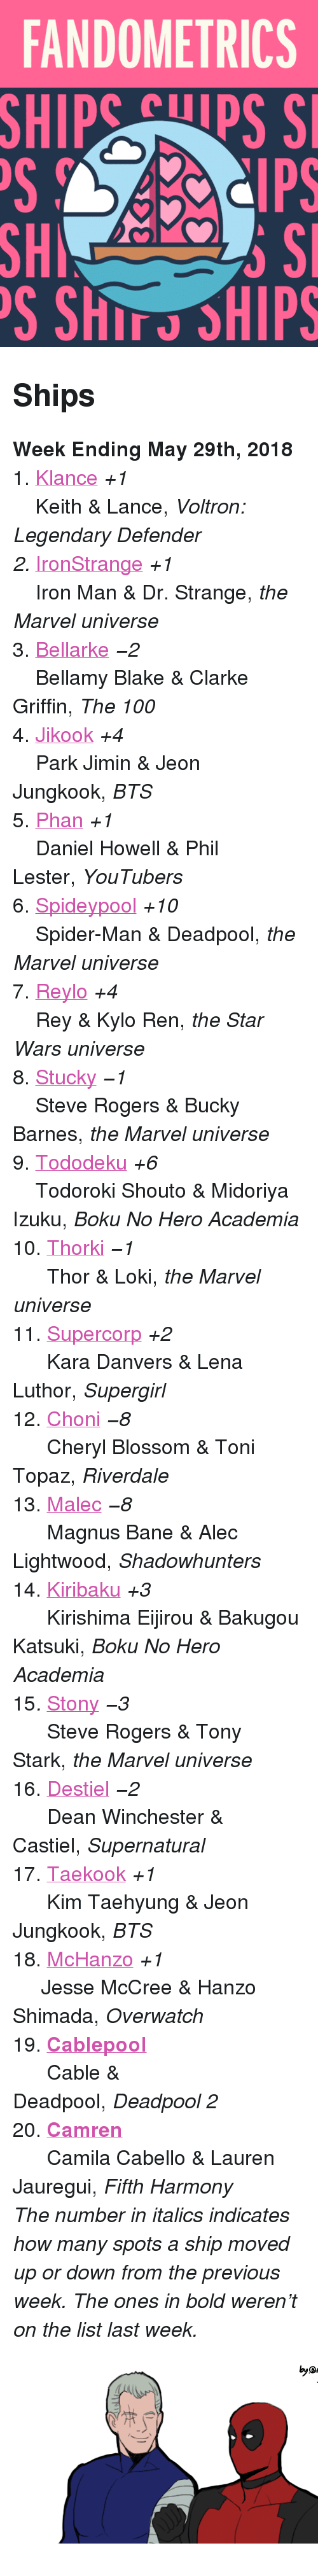 "Anaconda, Bane, and Iron Man: FANDOMETRICS  SHIP  Cps S  SH  S ShIT SHIPS <h2>Ships</h2><p><b>Week Ending May 29th, 2018</b></p><p>1.<b> </b><a href=""http://www.tumblr.com/search/klance"">Klance</a> <i>+1</i><br/>    Keith &amp; Lance, <i>Voltron: Legendary Defender<br/>2. </i><a href=""http://www.tumblr.com/search/ironstrange"">IronStrange</a> <i>+1</i><br/>    Iron Man &amp; Dr. Strange, <i>the Marvel universe</i><br/>3. <a href=""http://www.tumblr.com/search/bellarke"">Bellarke</a> <i><i>−2</i></i><br/>    Bellamy Blake &amp; Clarke Griffin, <i>The 100</i><br/>4. <a href=""http://www.tumblr.com/search/jikook"">Jikook</a> <i>+4</i><br/>    Park Jimin &amp; Jeon Jungkook, <i>BTS</i><br/>5.<i> </i><a href=""http://www.tumblr.com/search/phan"">Phan</a> <i>+1</i><br/>    Daniel Howell &amp; Phil Lester, <i>YouTubers</i><br/>6.<i> </i><a href=""http://www.tumblr.com/search/spideypool"">Spideypool</a> <i>+10</i><br/>    Spider-Man &amp; Deadpool, <i>the Marvel universe</i><br/>7.<i> </i><a href=""http://www.tumblr.com/search/reylo"">Reylo</a> <i>+4</i><br/>    Rey &amp; Kylo Ren, <i>the Star Wars universe</i><br/>8.<i> </i><a href=""http://www.tumblr.com/search/stucky"">Stucky</a> <i><i>−1</i></i><br/>    Steve Rogers &amp; Bucky Barnes, <i>the Marvel universe</i><br/>9.<i> </i><a href=""http://www.tumblr.com/search/tododeku"">Tododeku</a> <i>+6</i><br/>    Todoroki Shouto &amp; Midoriya Izuku, <i>Boku No Hero Academia</i><br/>10. <a href=""http://www.tumblr.com/search/thorki"">Thorki</a> <i><i>−1</i></i><br/>      Thor &amp; Loki, <i>the Marvel universe</i><br/>11.<i> </i><a href=""http://www.tumblr.com/search/supercorp"">Supercorp</a> <i>+2</i><br/>      Kara Danvers &amp; Lena Luthor, <i>Supergirl</i><br/>12. <a href=""http://www.tumblr.com/search/choni"">Choni</a> <i><i>−8</i></i><br/>      Cheryl Blossom &amp; Toni Topaz, <i>Riverdale</i><br/>13.<i> </i><a href=""http://www.tumblr.com/search/malec"">Malec</a> <i><i>−8</i></i><br/>      Magnus Bane &amp; Alec Lightwood, <i>Shadowhunters</i><br/>14.<i> </i><a href=""http://www.tumblr.com/search/kiribaku"">Kiribaku</a> <i>+3</i><br/>      Kirishima Eijirou  &amp; Bakugou Katsuki, <i>Boku No Hero Academia</i><br/>15<i>. </i><a href=""http://www.tumblr.com/search/stony"">Stony</a> <i><i>−3</i></i><br/>      Steve Rogers &amp; Tony Stark, <i>the Marvel universe</i><br/>16.<i> </i><a href=""http://www.tumblr.com/search/destiel"">Destiel</a> <i><i>−2</i></i><br/>      Dean Winchester &amp; Castiel, <i>Supernatural</i><br/>17. <a href=""http://www.tumblr.com/search/taekook"">Taekook</a> <i>+1</i><br/>      Kim Taehyung &amp; Jeon Jungkook, <i>BTS</i><br/>18. <a href=""http://www.tumblr.com/search/mchanzo"">McHanzo</a> <i>+1</i><br/>     Jesse McCree &amp; Hanzo Shimada, <i>Overwatch</i><br/>19.<i> </i><a href=""http://www.tumblr.com/search/cablepool""><b>Cablepool</b></a><br/>      Cable &amp; Deadpool, <i>Deadpool 2</i><br/>20. <a href=""http://www.tumblr.com/search/camren""><b>Camren</b></a><br/>      Camila Cabello &amp; Lauren Jauregui, <i>Fifth Harmony</i></p><p><i>The number in italics indicates how many spots a ship moved up or down from the previous week. The ones in bold weren't on the list last week.</i></p><figure class=""tmblr-full pinned-target"" data-orig-height=""281"" data-orig-width=""500"" data-tumblr-attribution=""areyouhun:Tc3g9hplHuMBa50G0-NuFA:ZjhpWn22Th9SA""><img src=""https://78.media.tumblr.com/463428f28e9b1caa1368c0abd48d21ce/tumblr_o37jg39vyH1tbfejio1_500.gifv"" data-orig-height=""281"" data-orig-width=""500""/></figure>"